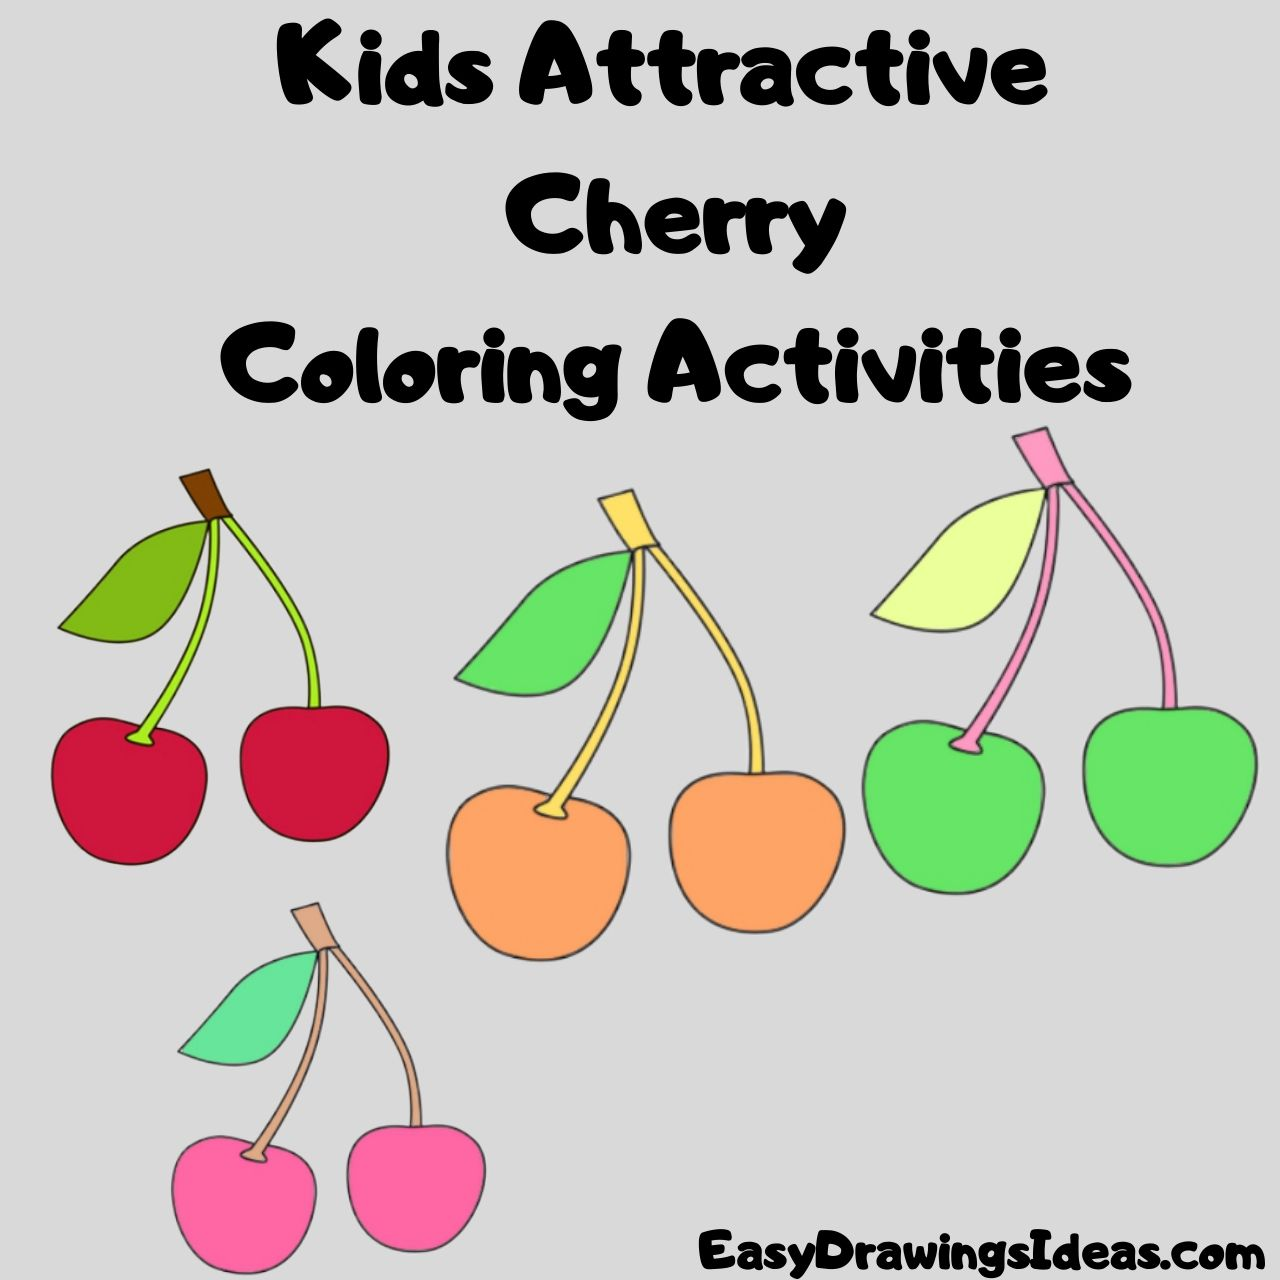 Kids Attractive Cherry Coloring Activities FOR KIDS STEP BY STEP